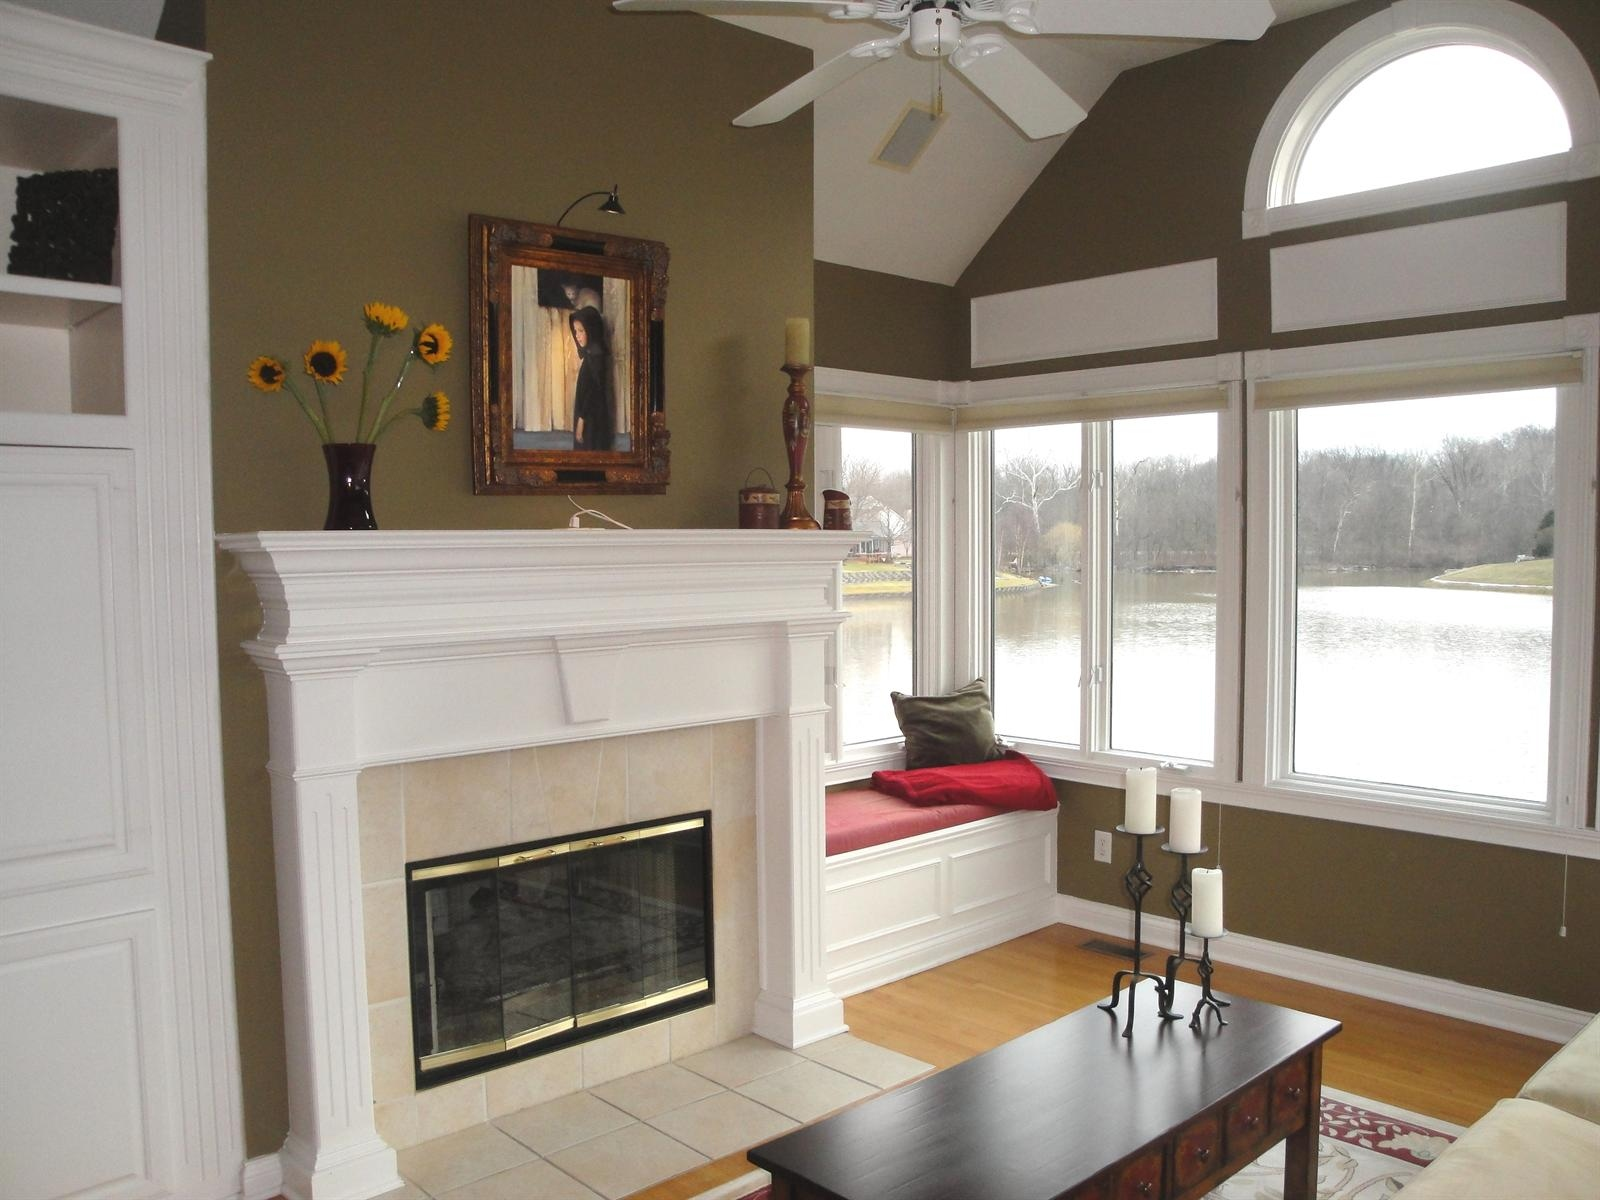 Real Estate Photography - 6533 Cherbourg Cir, # Cl, Indianapolis, IN, 46220 - Location 17